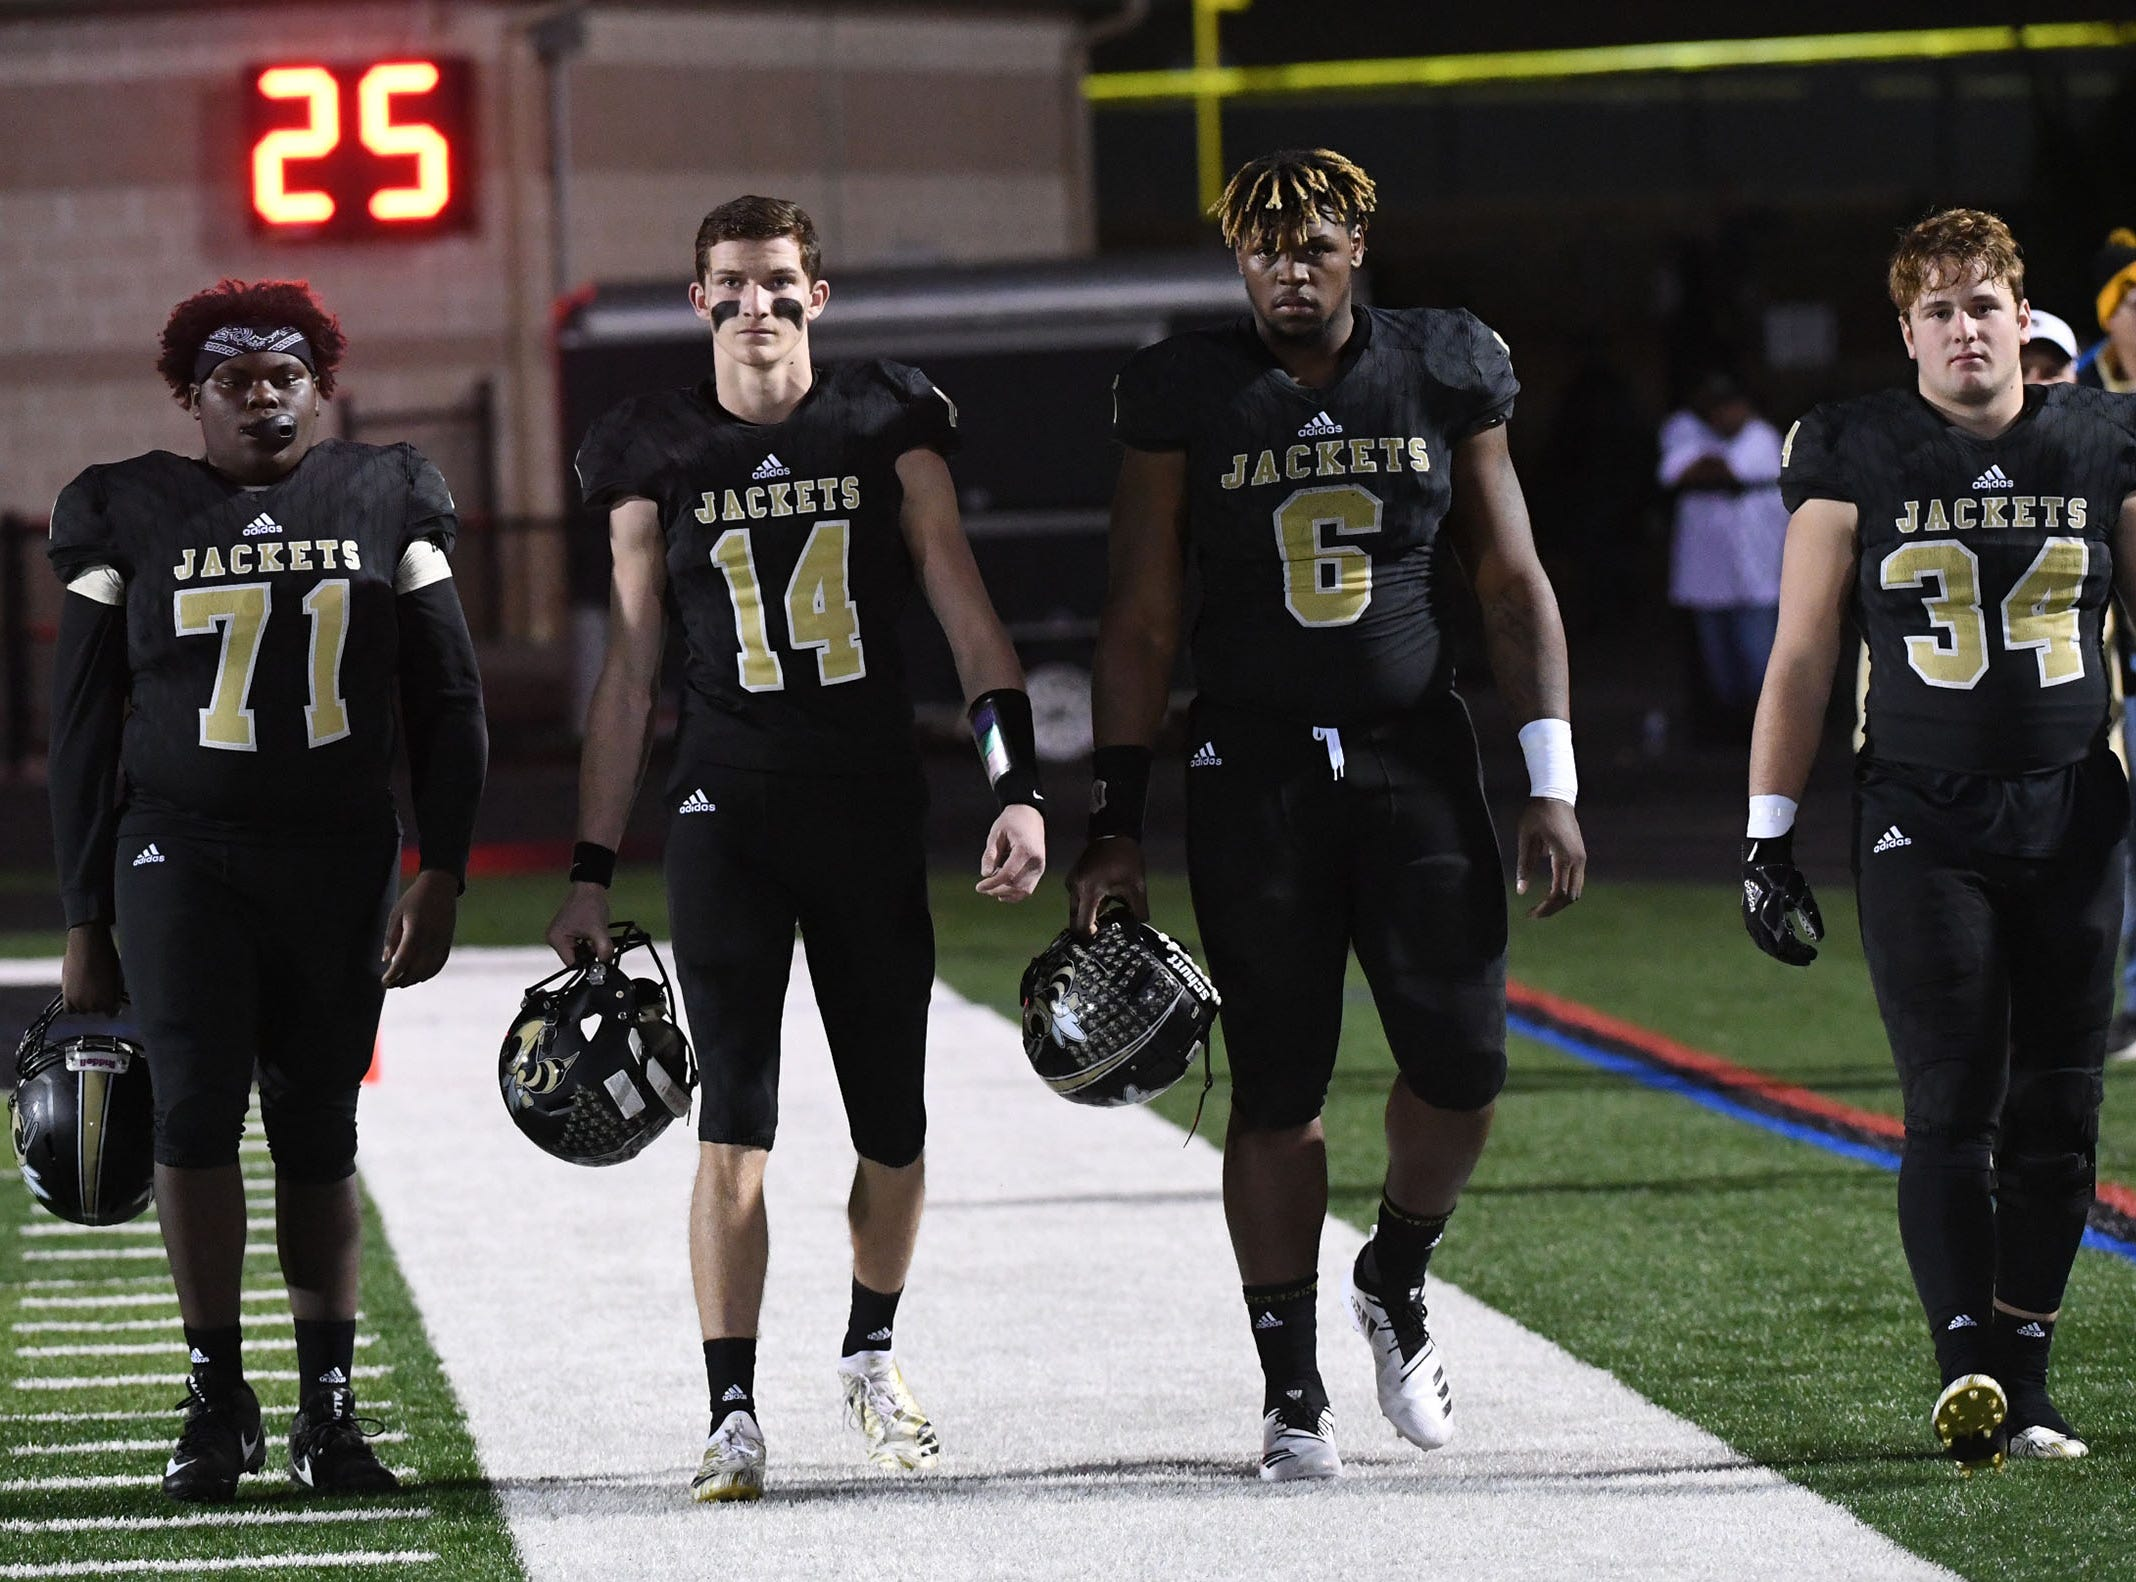 TL Hanna High School captains arrive before the kickoff of the Class AAAAA state playoffs at TL Hanna High School in Anderson on Friday, November 30, 2018.